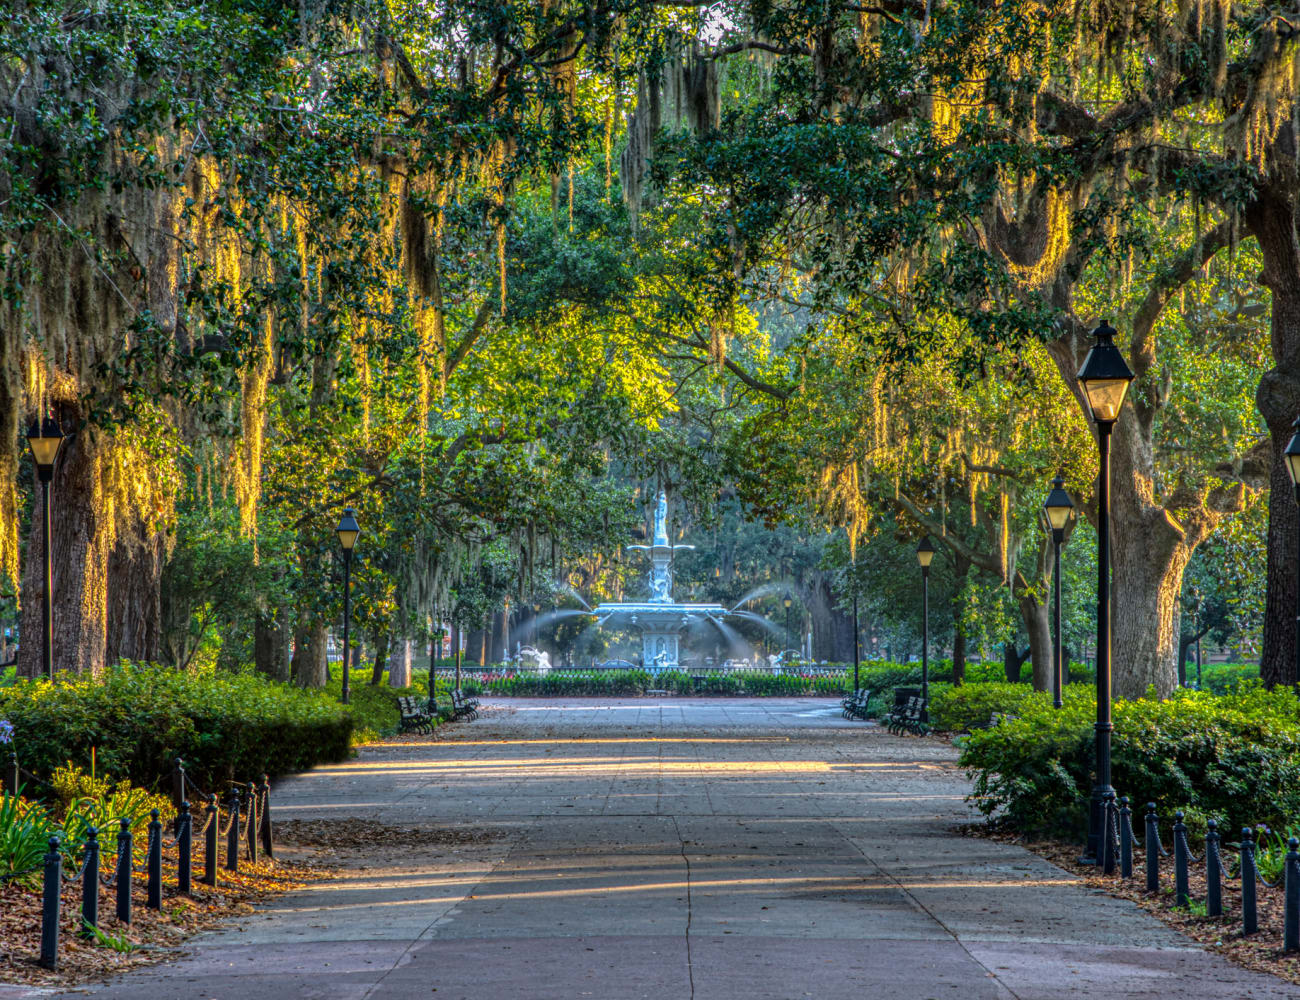 Beautiful canopy of mature trees shading the pathway to a park's fountain near The Bentley at Marietta in Marietta, Georgia